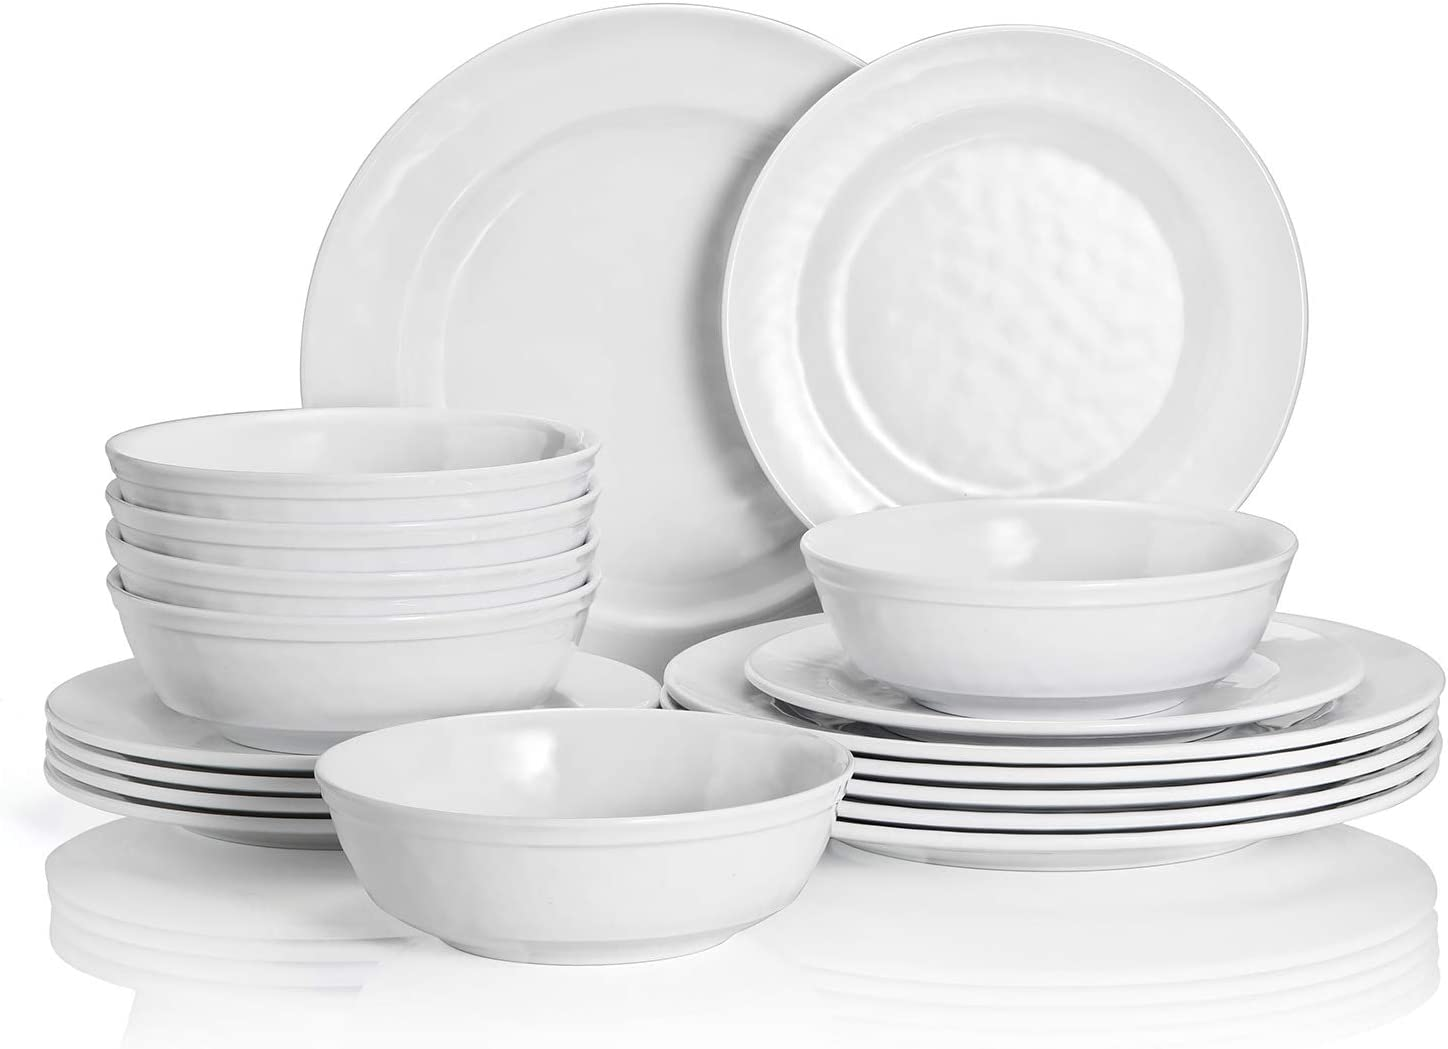 TP Dinnerware Set, 18-Piece Melamine Dishes Set, Dinner Service for 6 with Bowls and Salad Dinner Plates, White